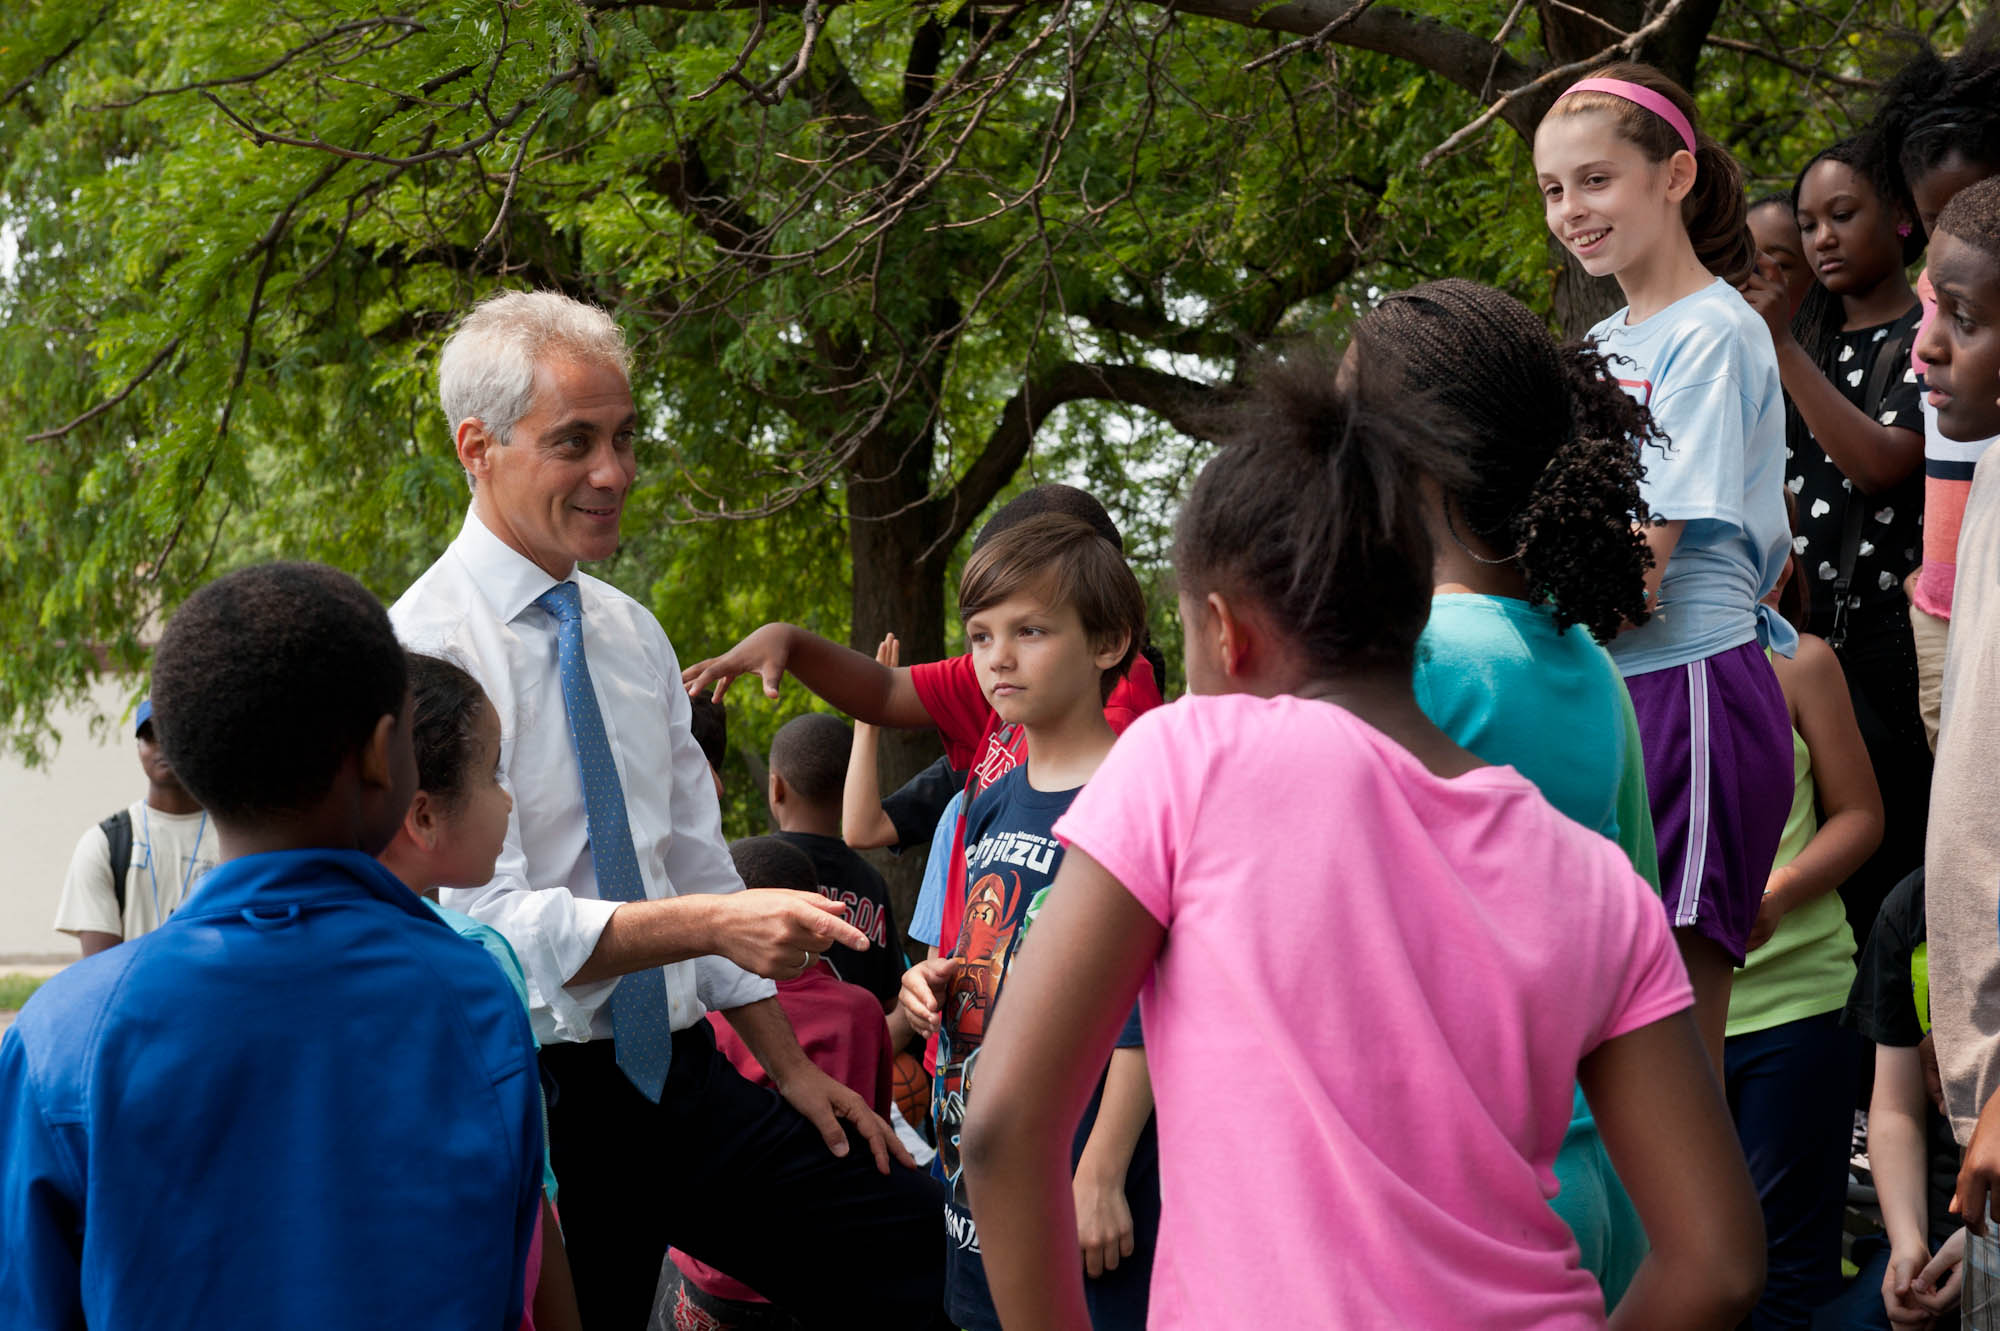 Mayor Emanuel joins young Chicagoans on the first day of Parks programming this summer